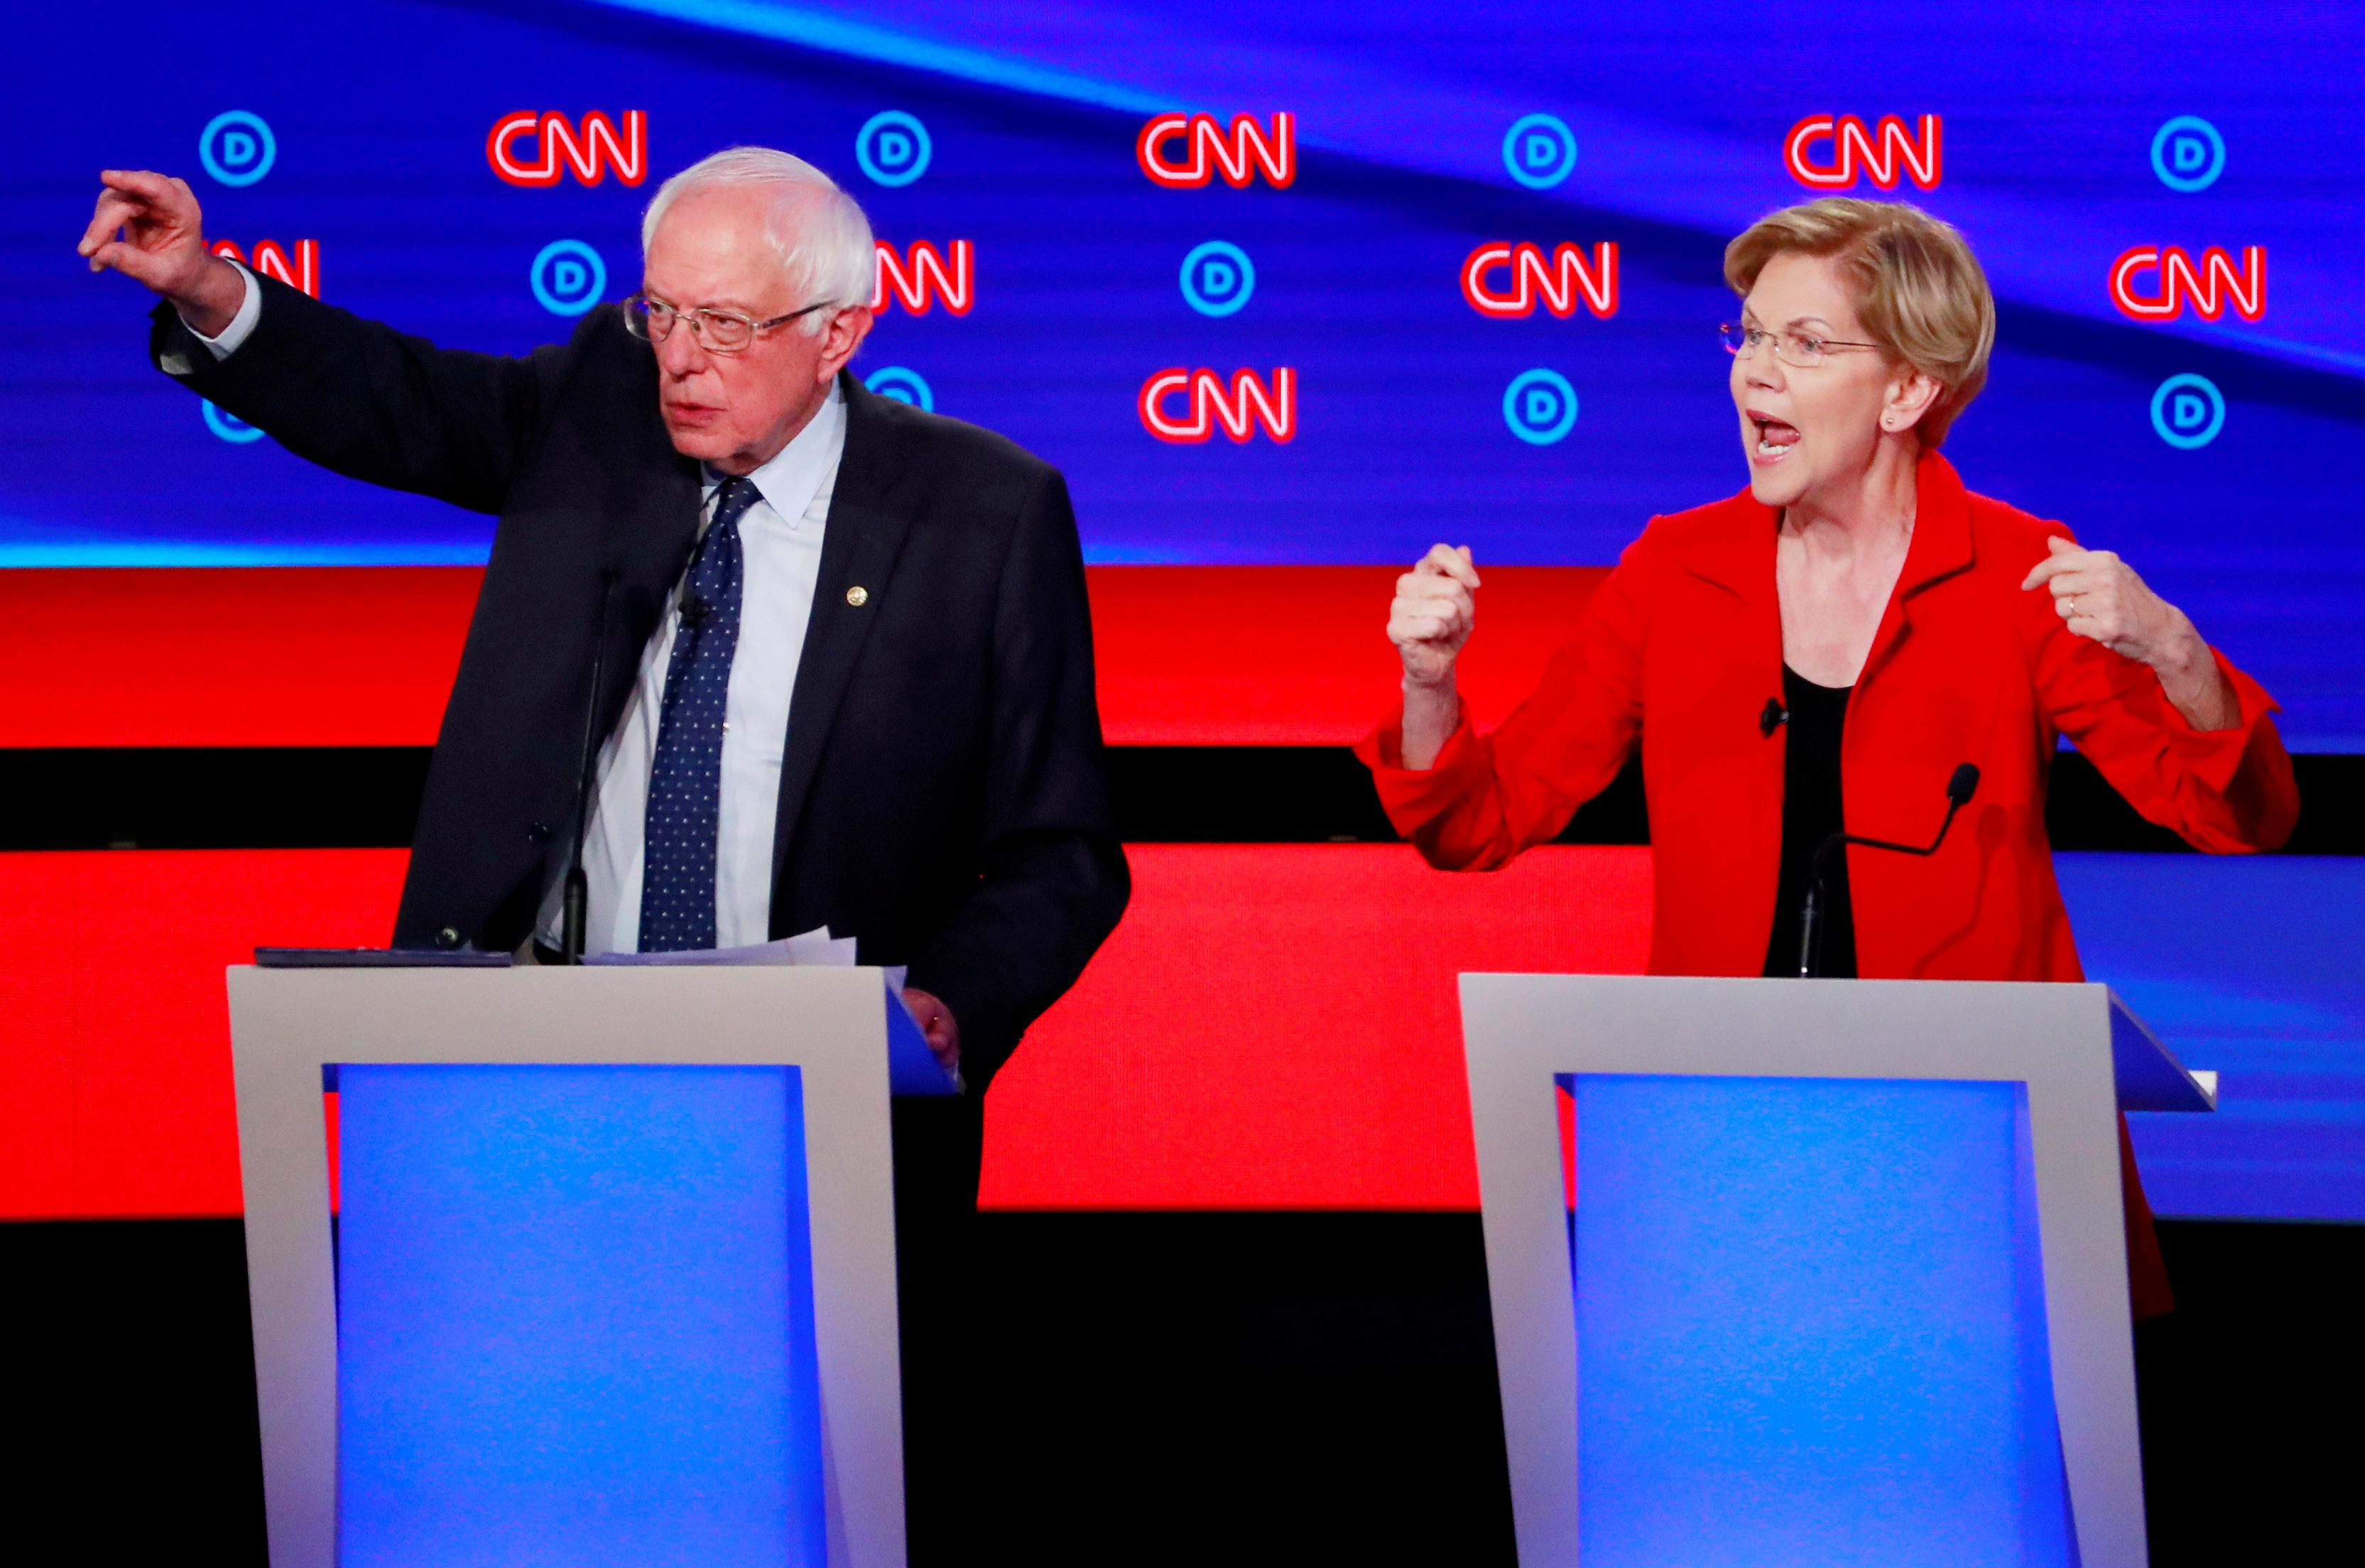 Column: U.S. Democrats have wisely moved to the left on ideas for...